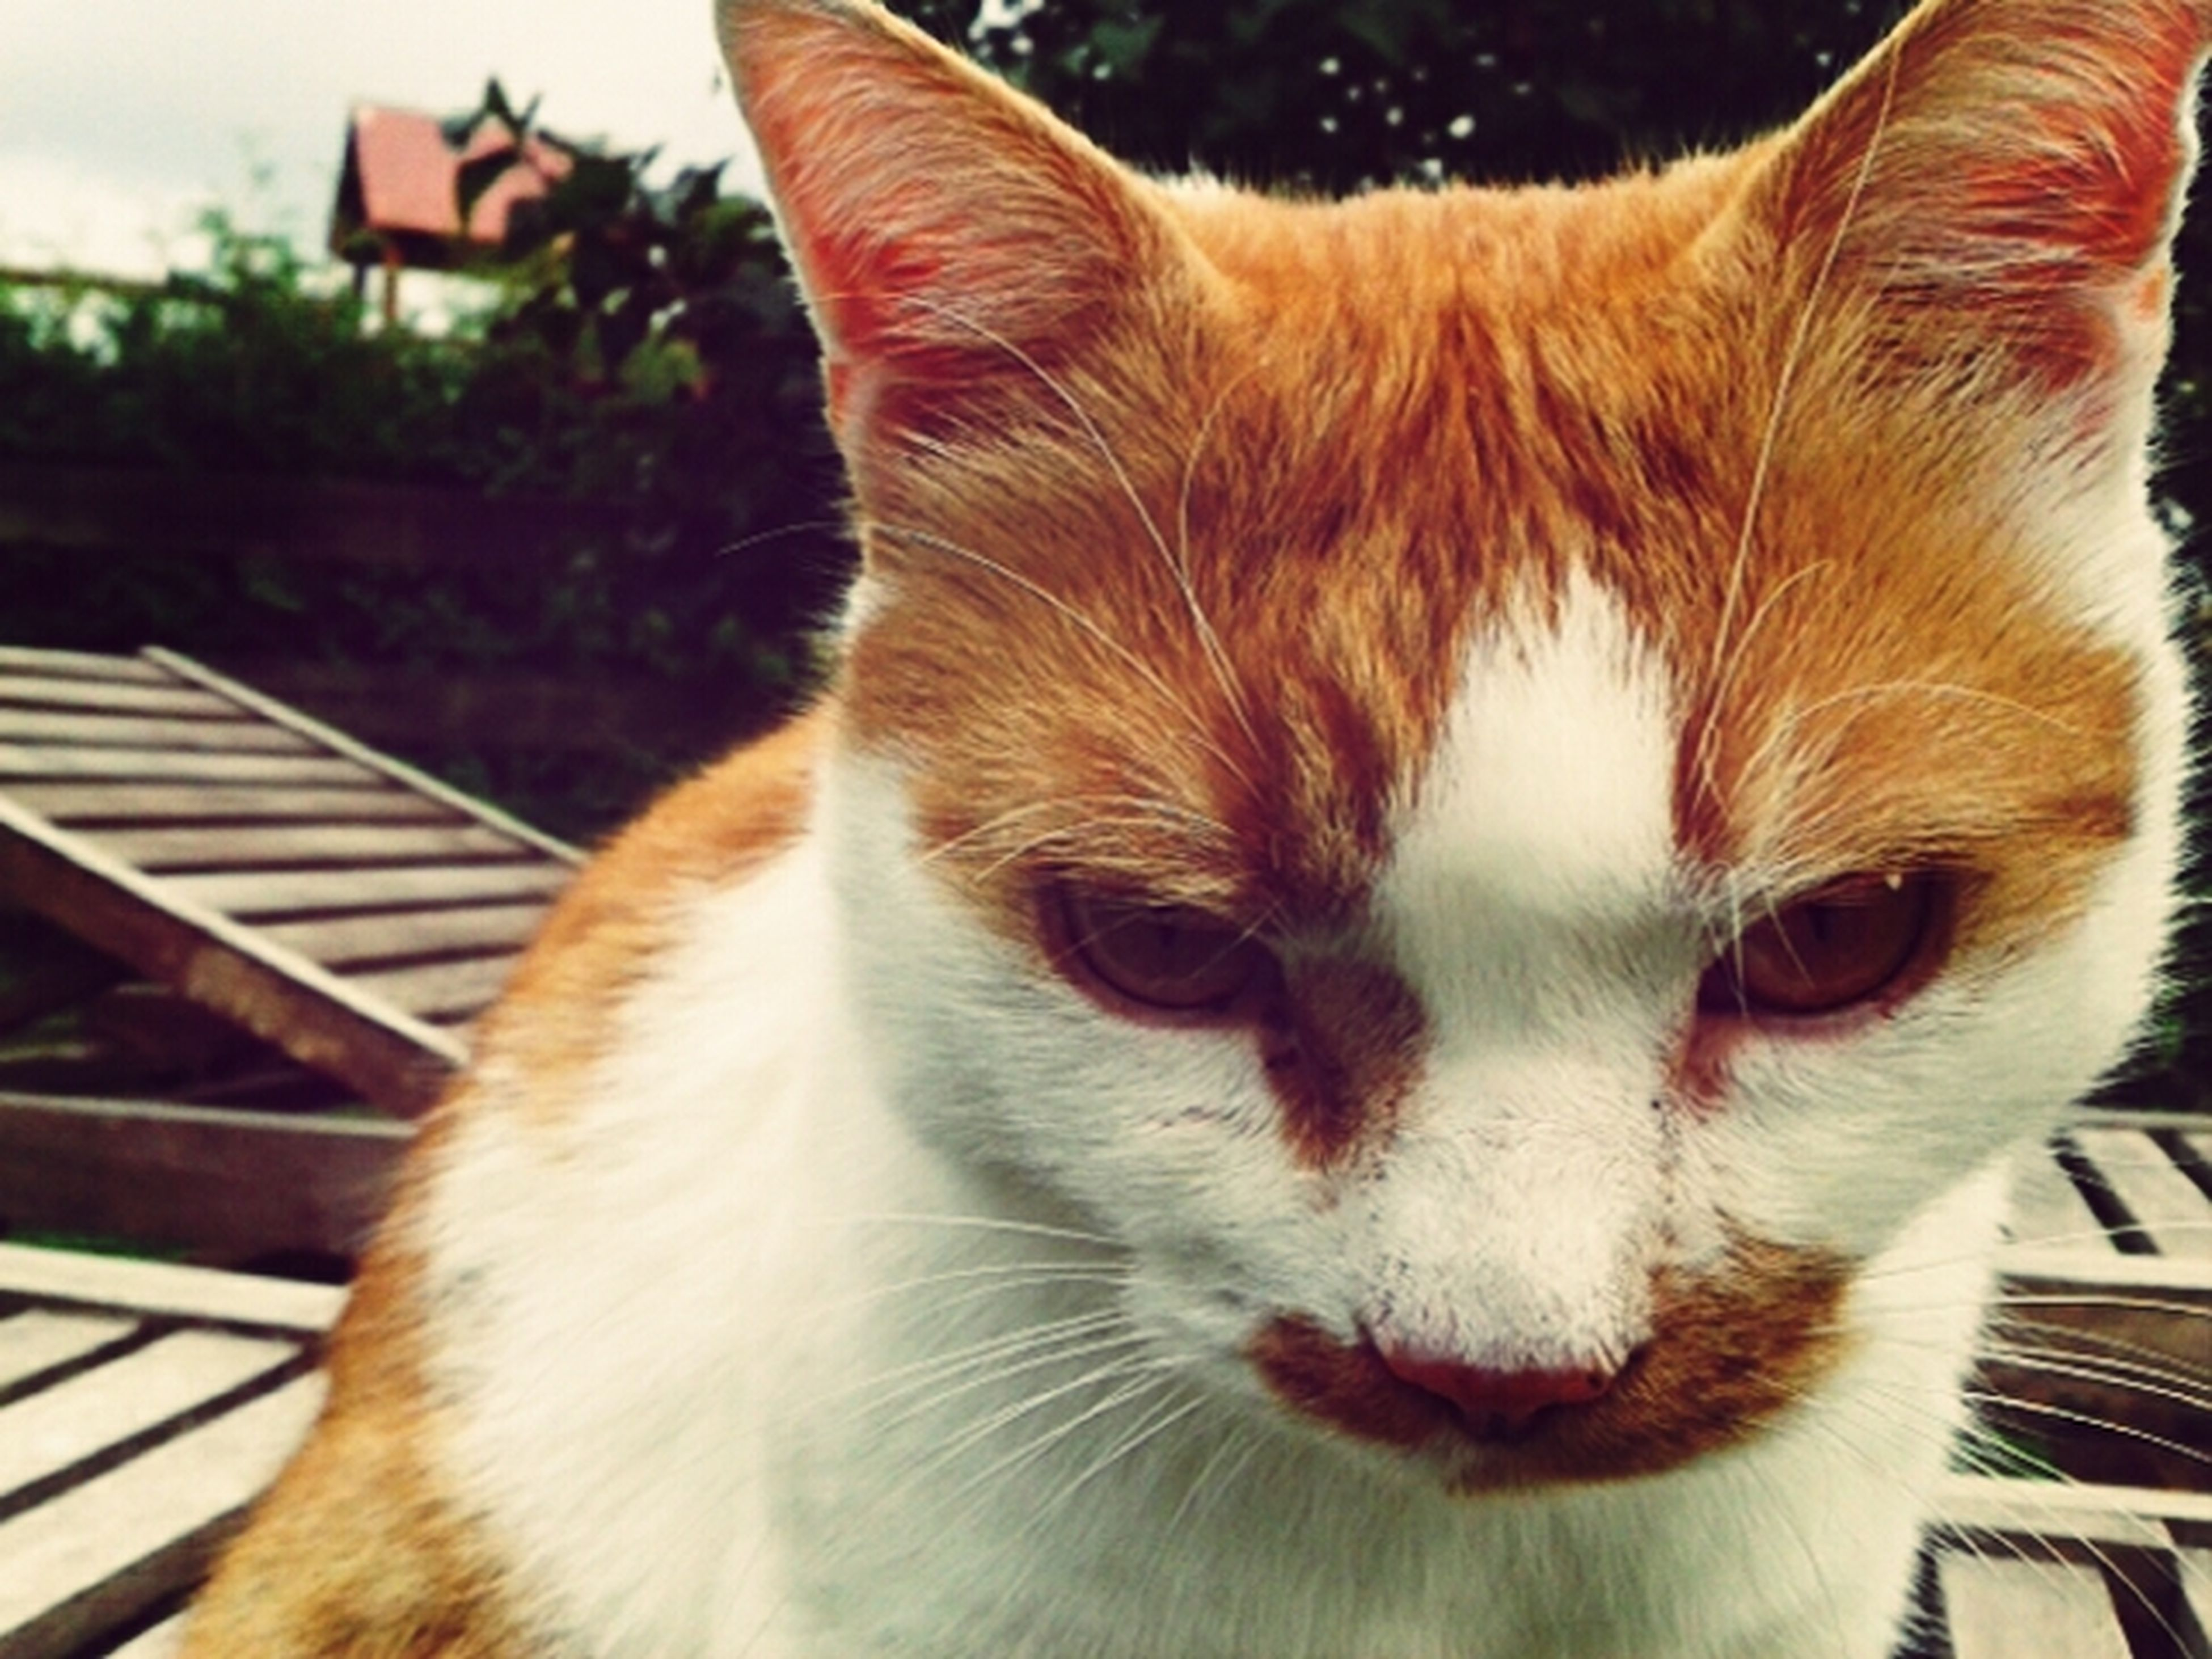 pets, domestic cat, domestic animals, one animal, animal themes, mammal, cat, feline, whisker, close-up, indoors, animal head, looking away, focus on foreground, relaxation, no people, portrait, home interior, alertness